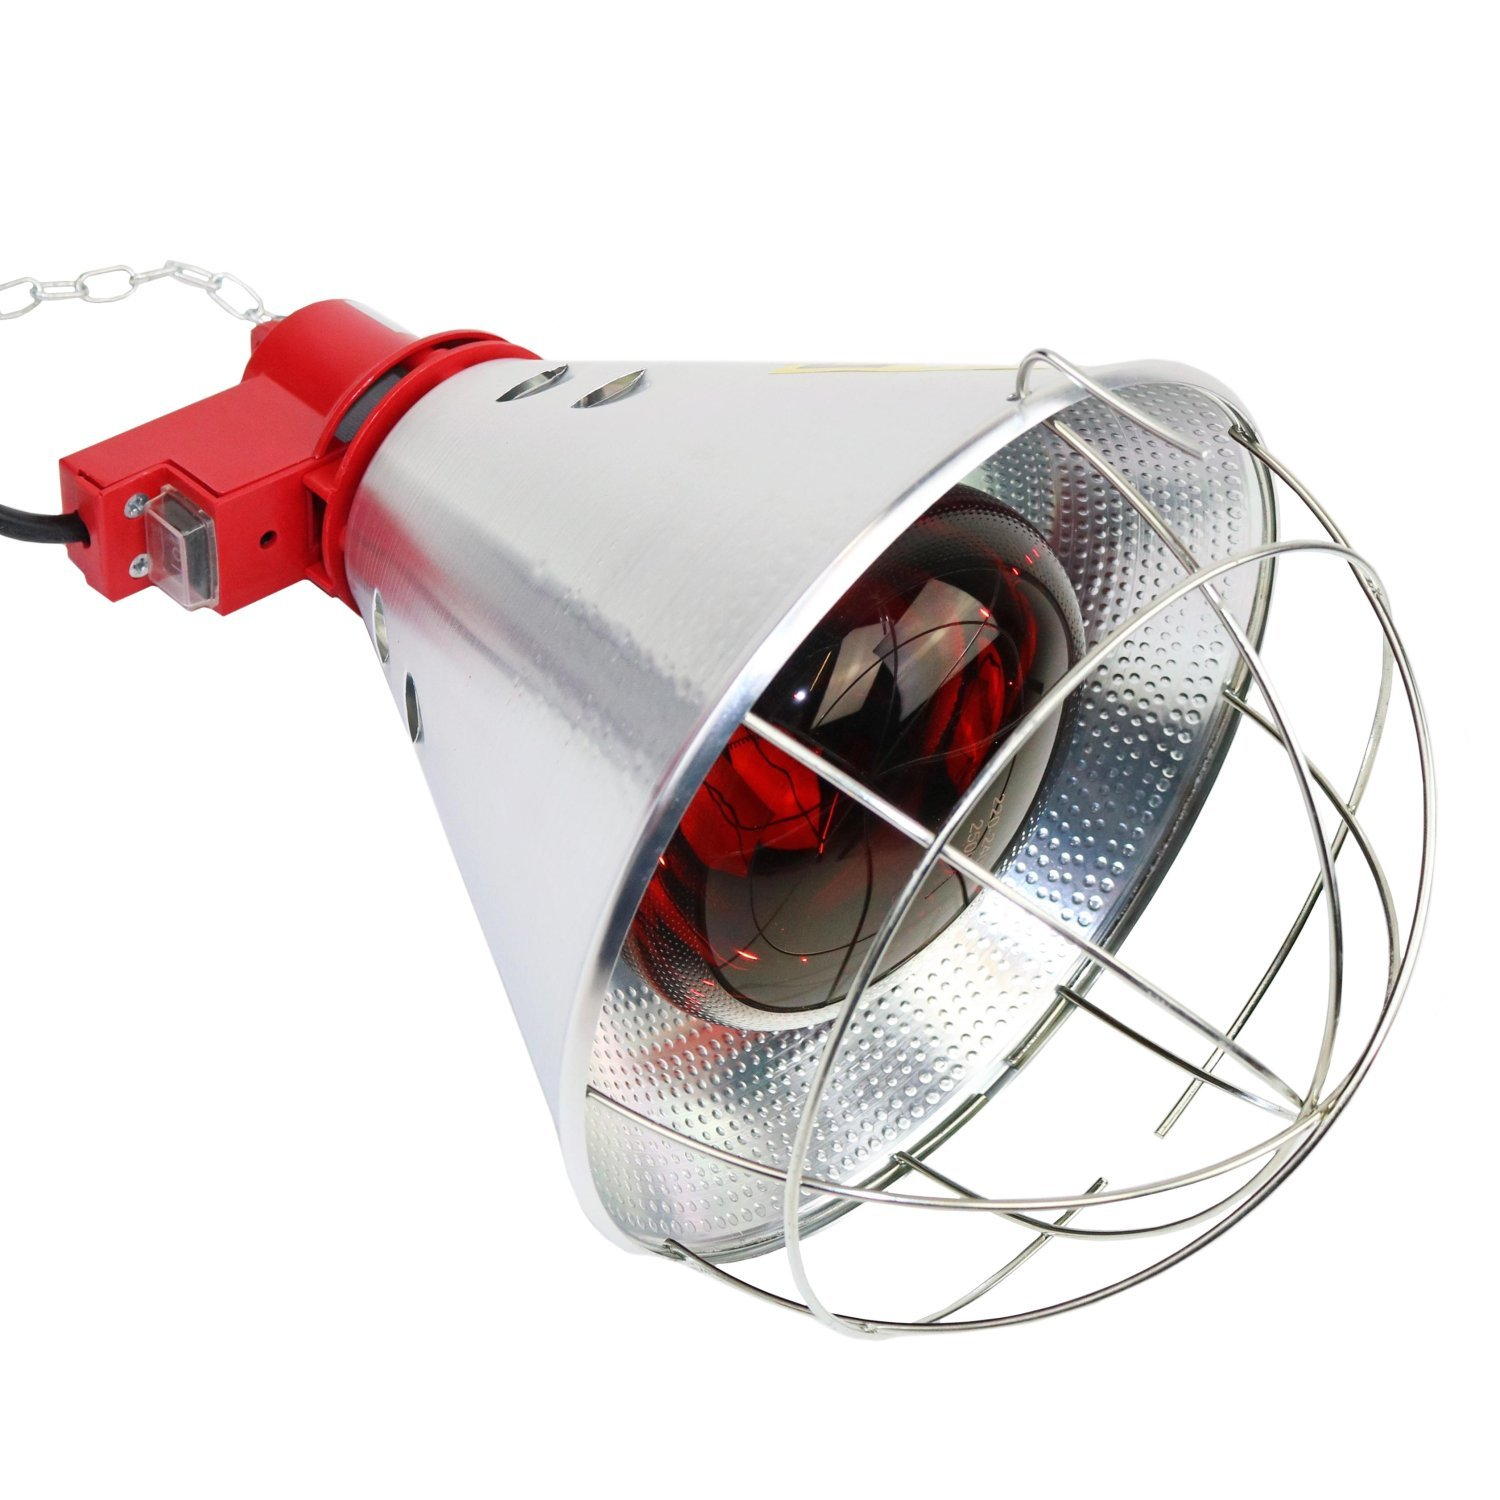 Poultry Heat Incubator Lamp 250w W Red Bulb For Chicks